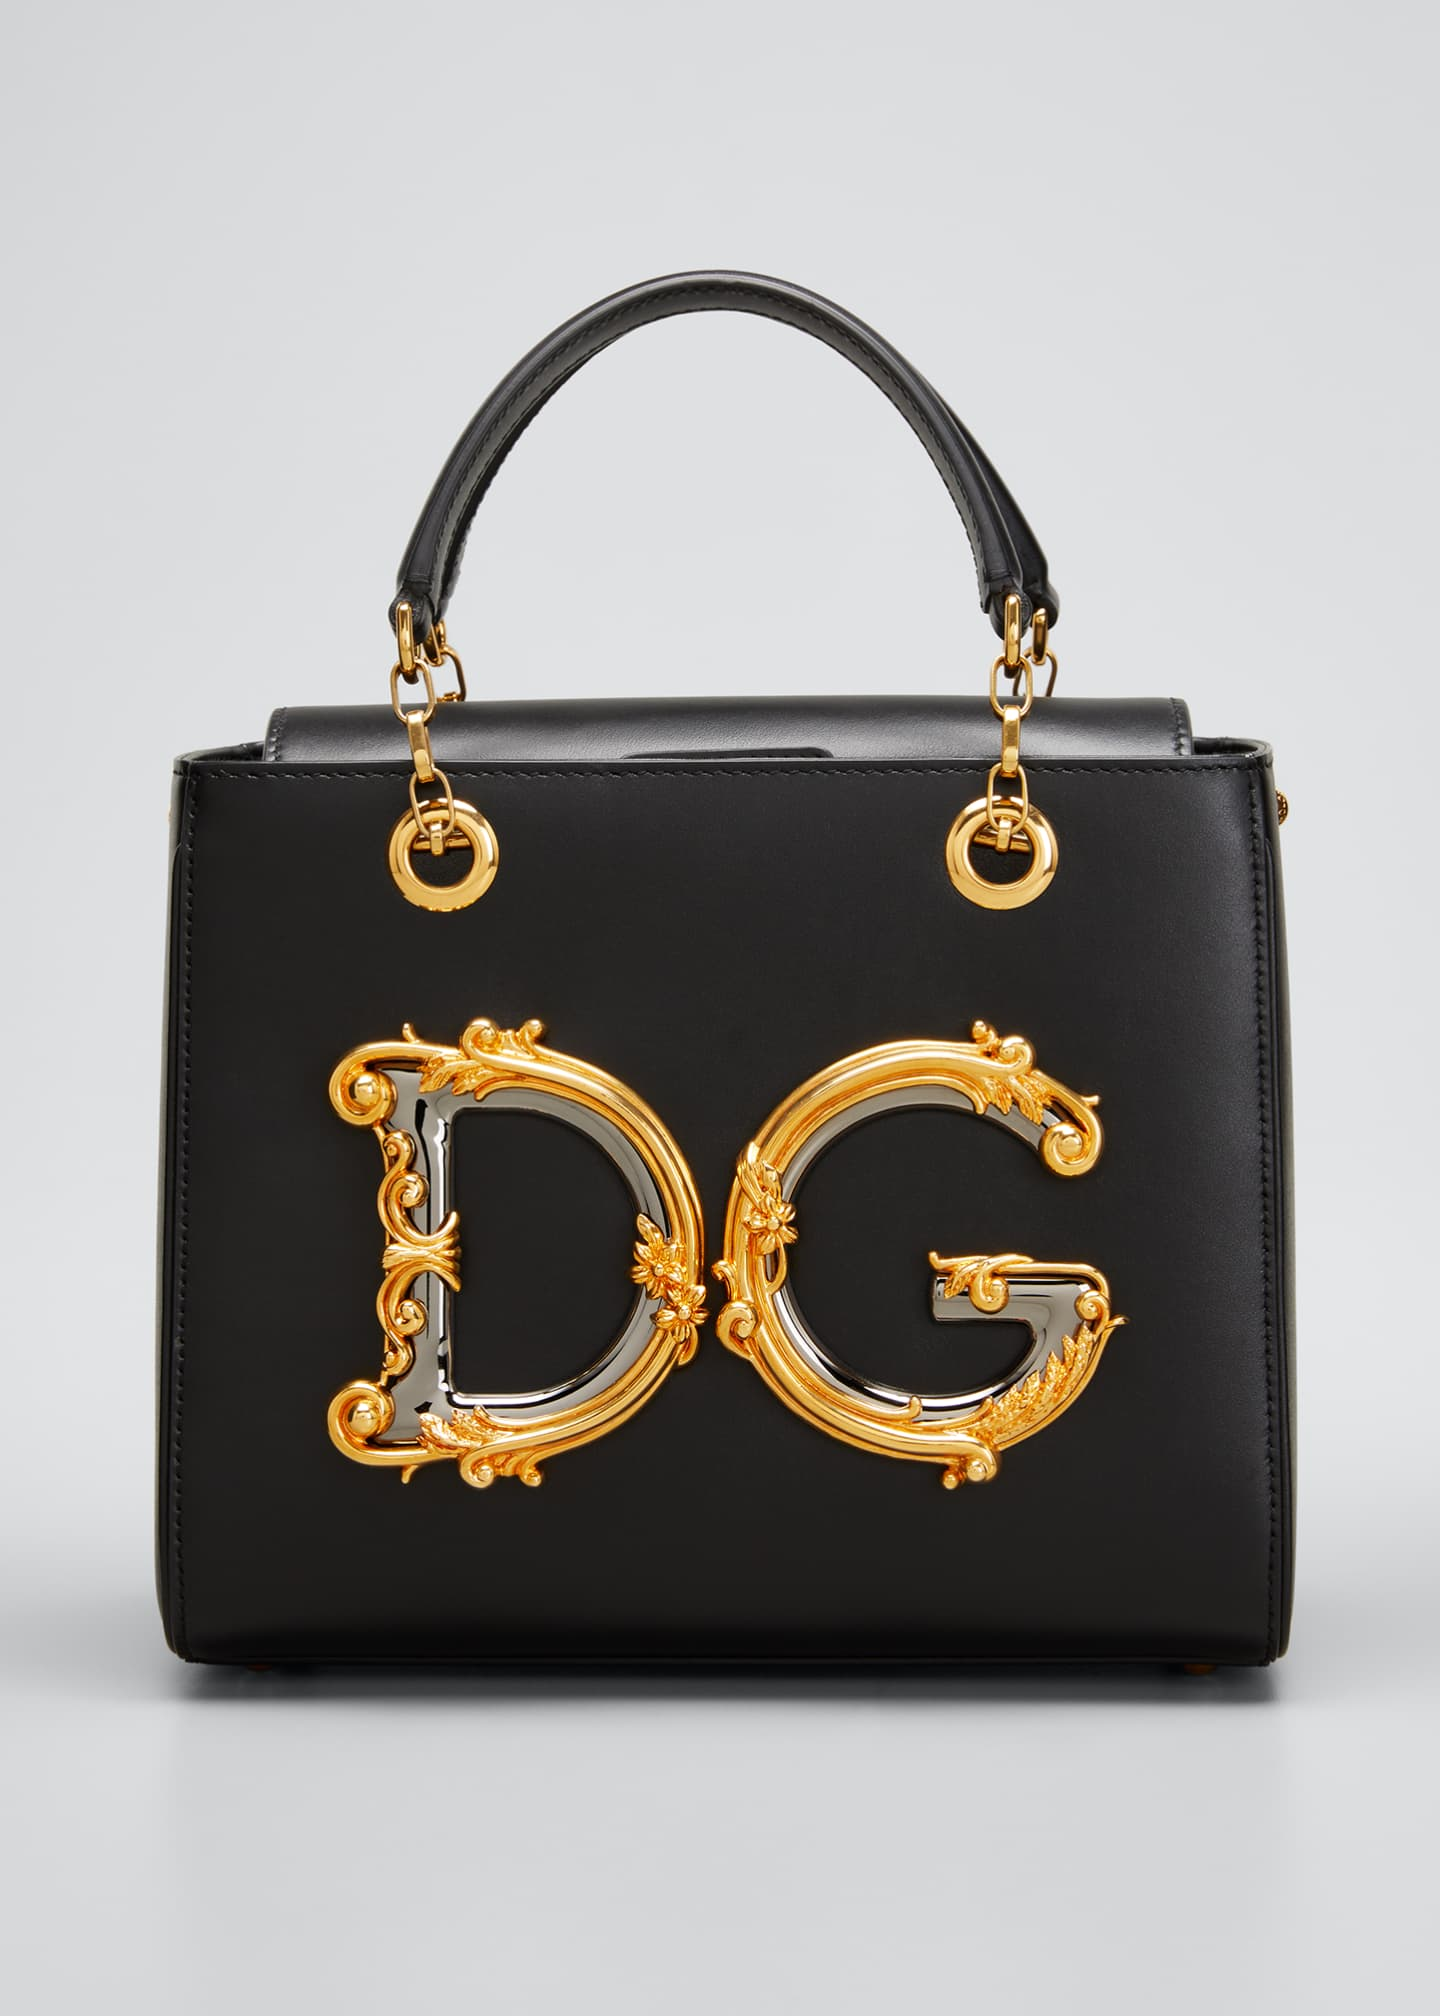 DG Medallion Top Handle Satchel Bag